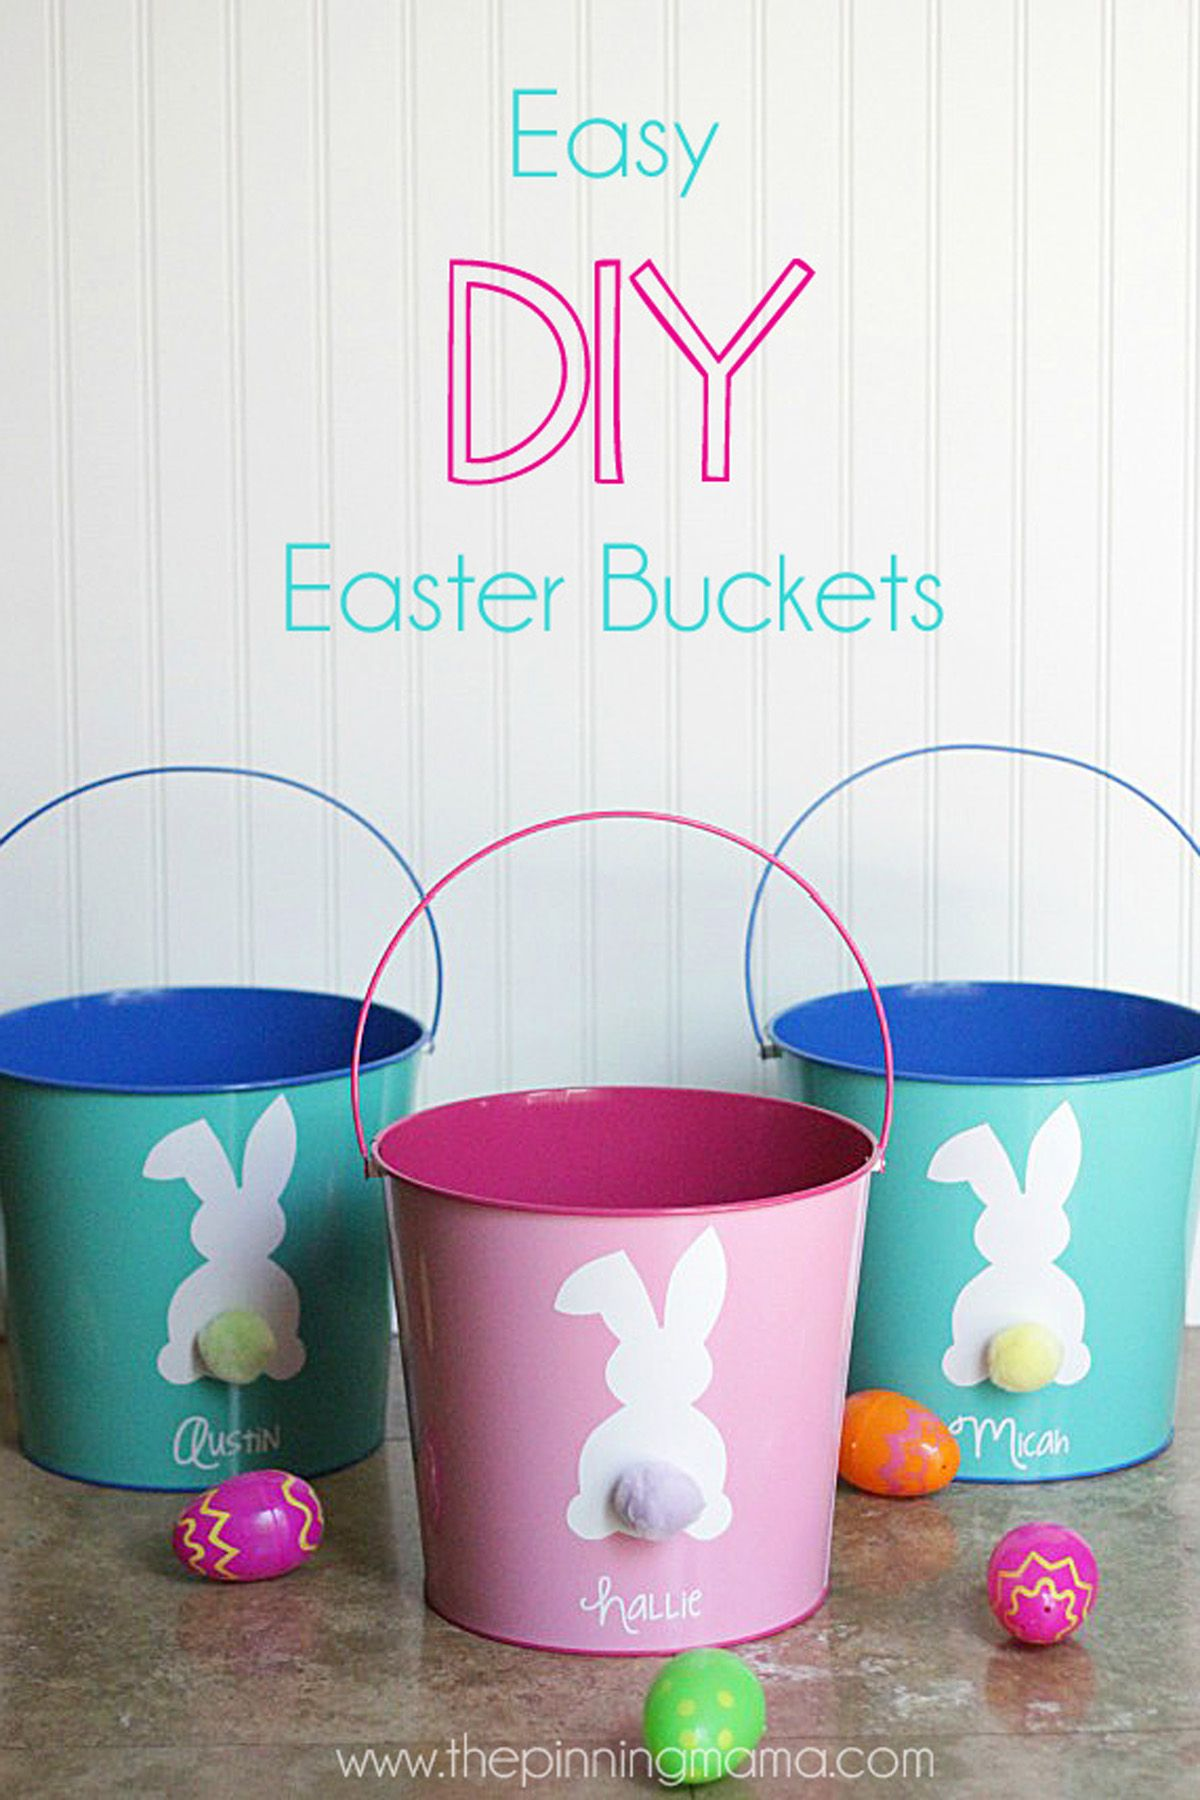 21 cute homemade easter basket ideas easter gifts for kids and 21 cute homemade easter basket ideas easter gifts for kids and adults negle Image collections